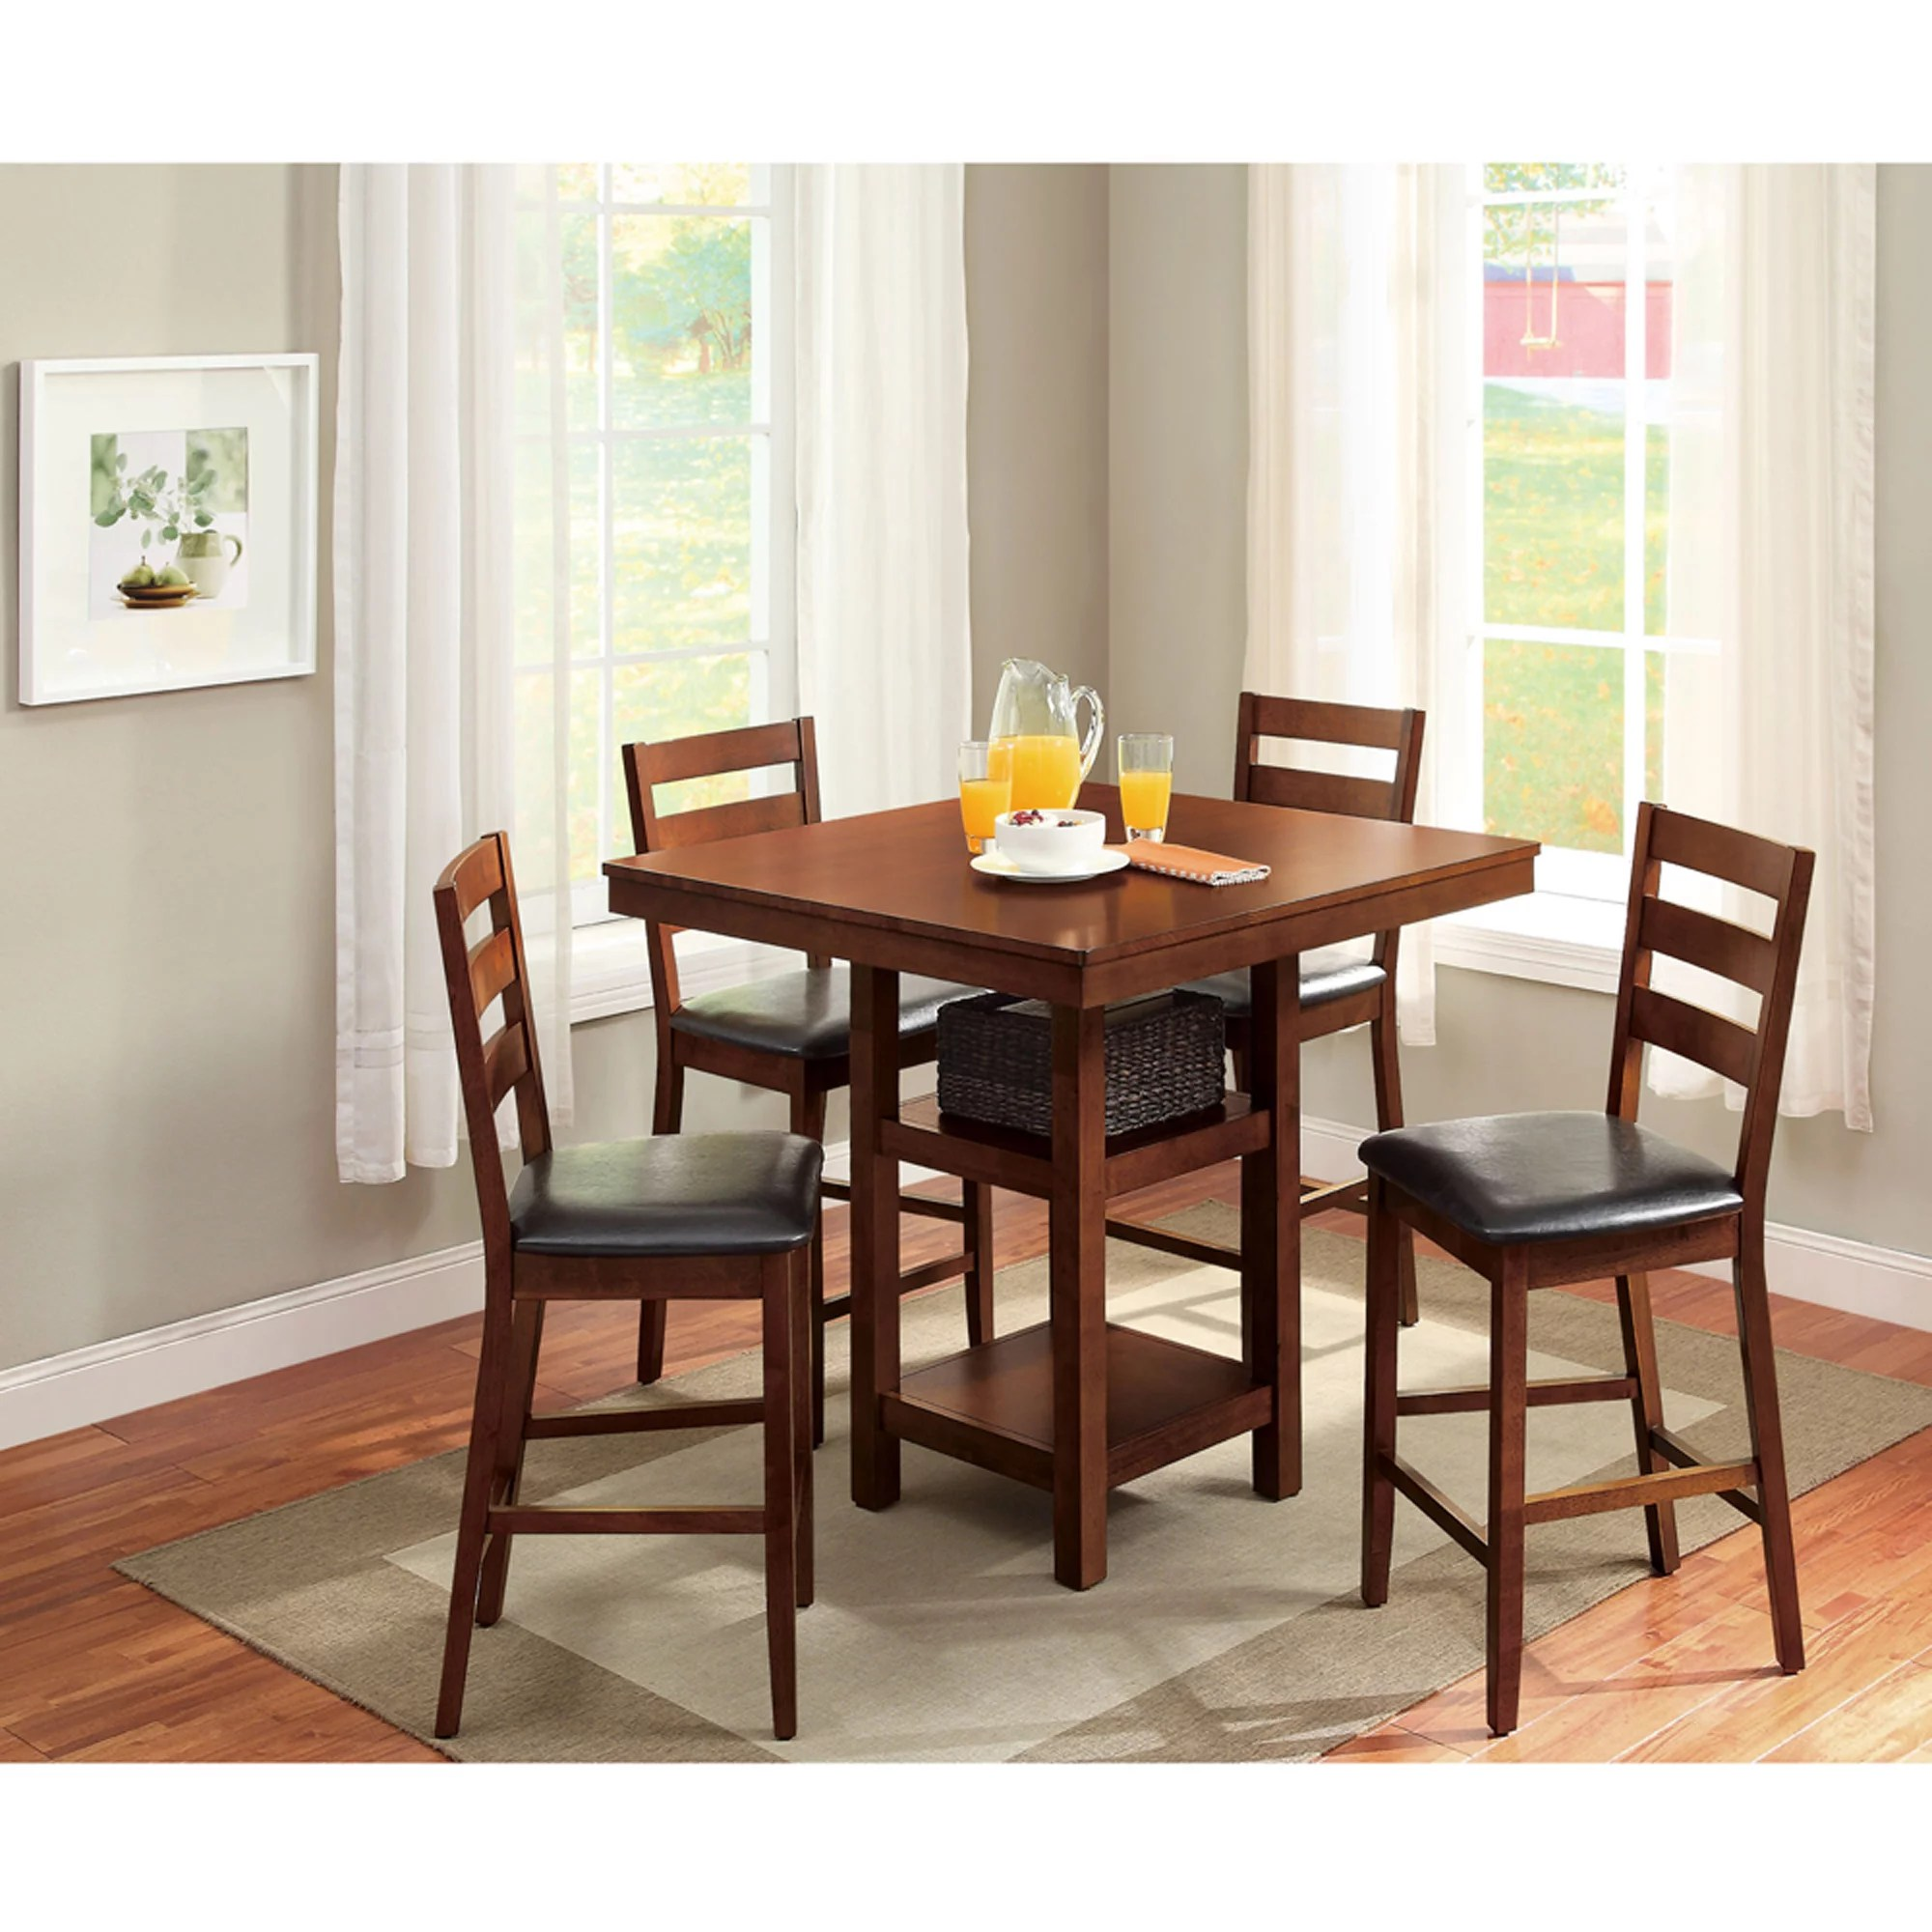 solid oak dining table and chairs diy office chair better homes gardens dalton park 5 piece counter height set walmart com